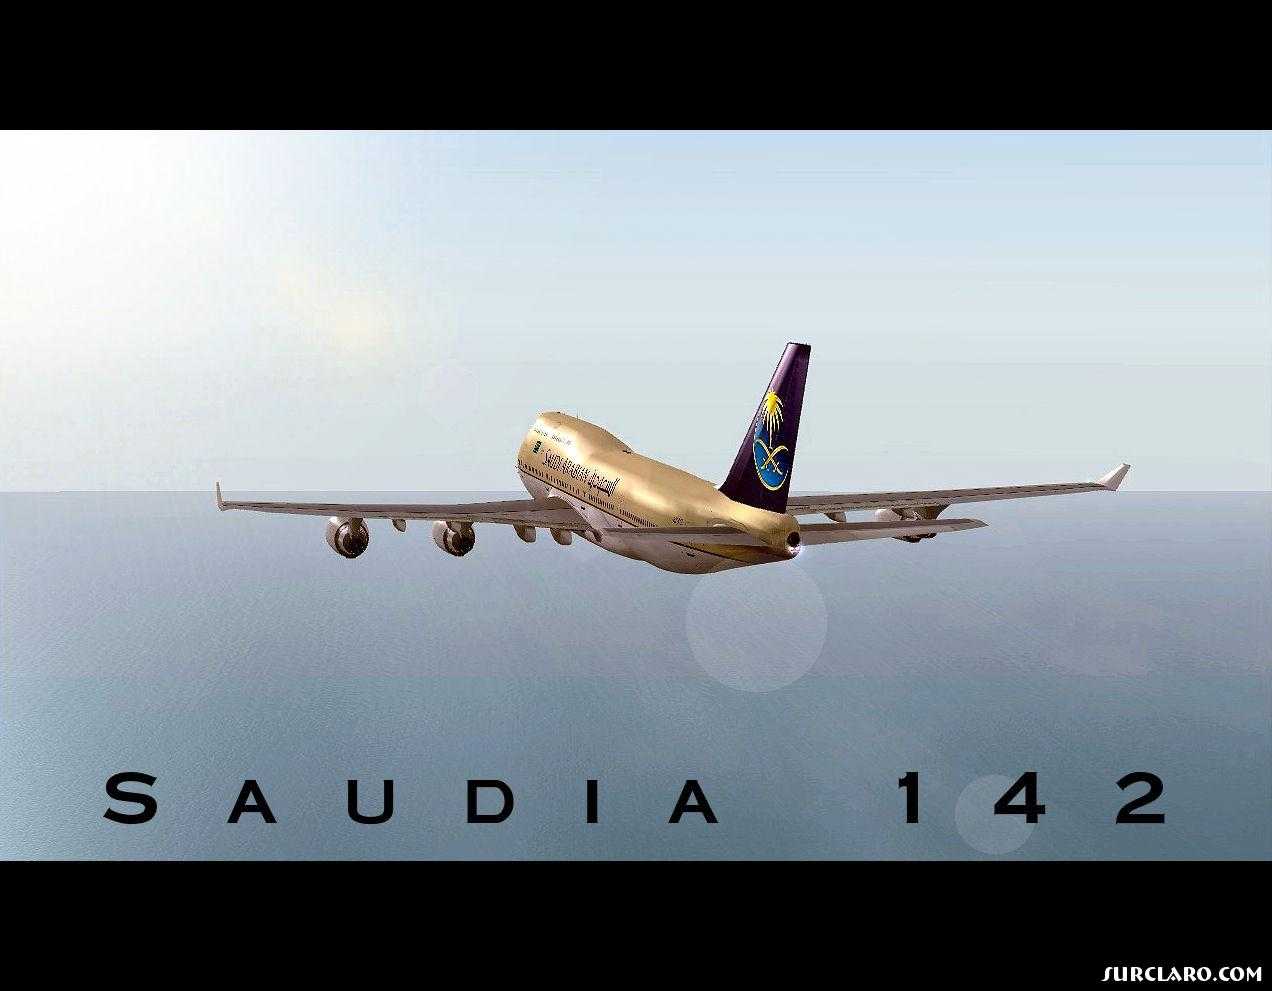 Saudi Arabian 747-400 cruising - Photo 15669